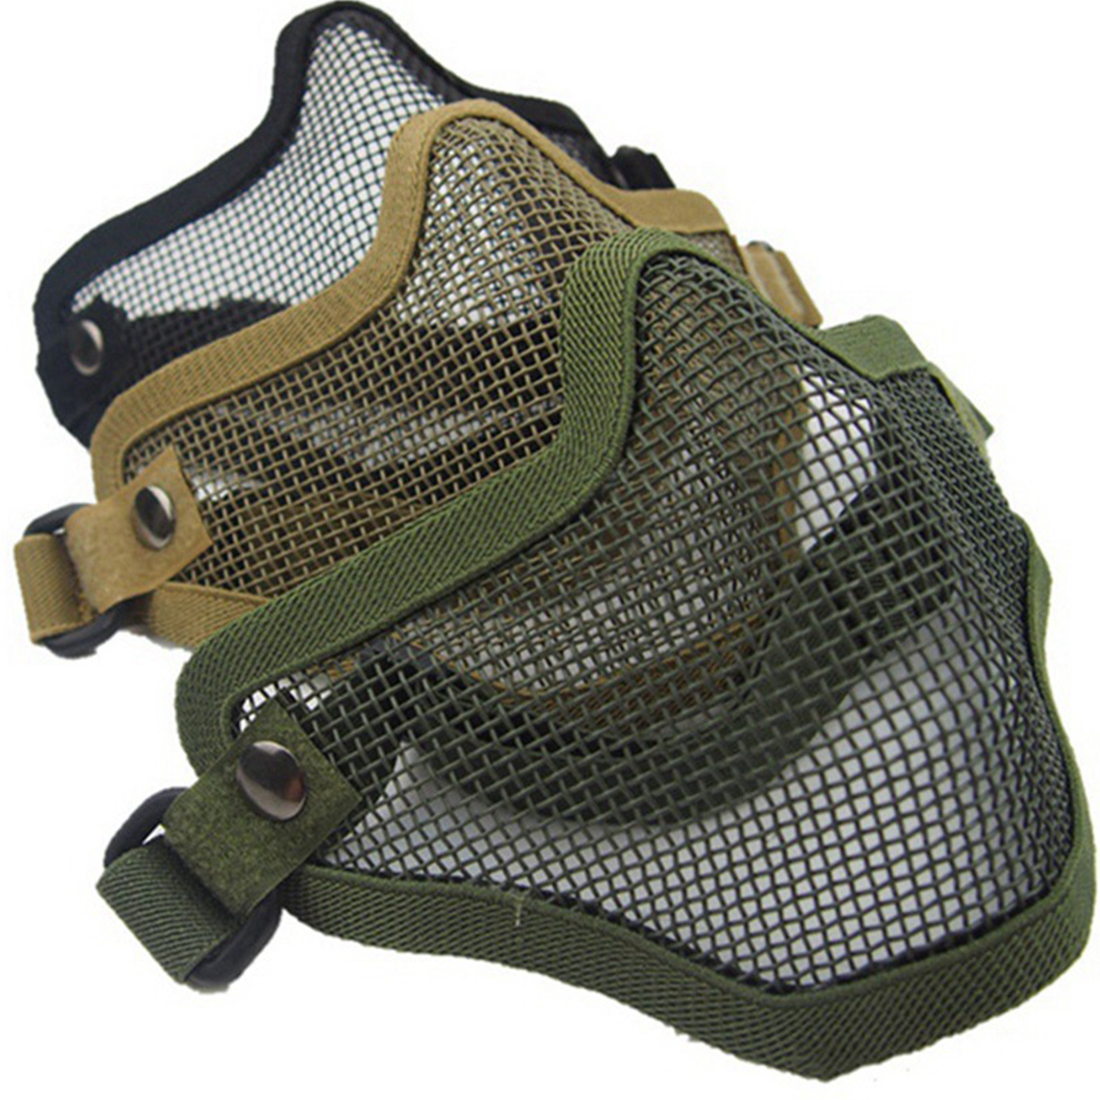 Brand Hot Half Lower Face Metal Steel Net Mesh Hunting Tactical Protective Airsoft Mask For Military Paintball Hunting Airsoft